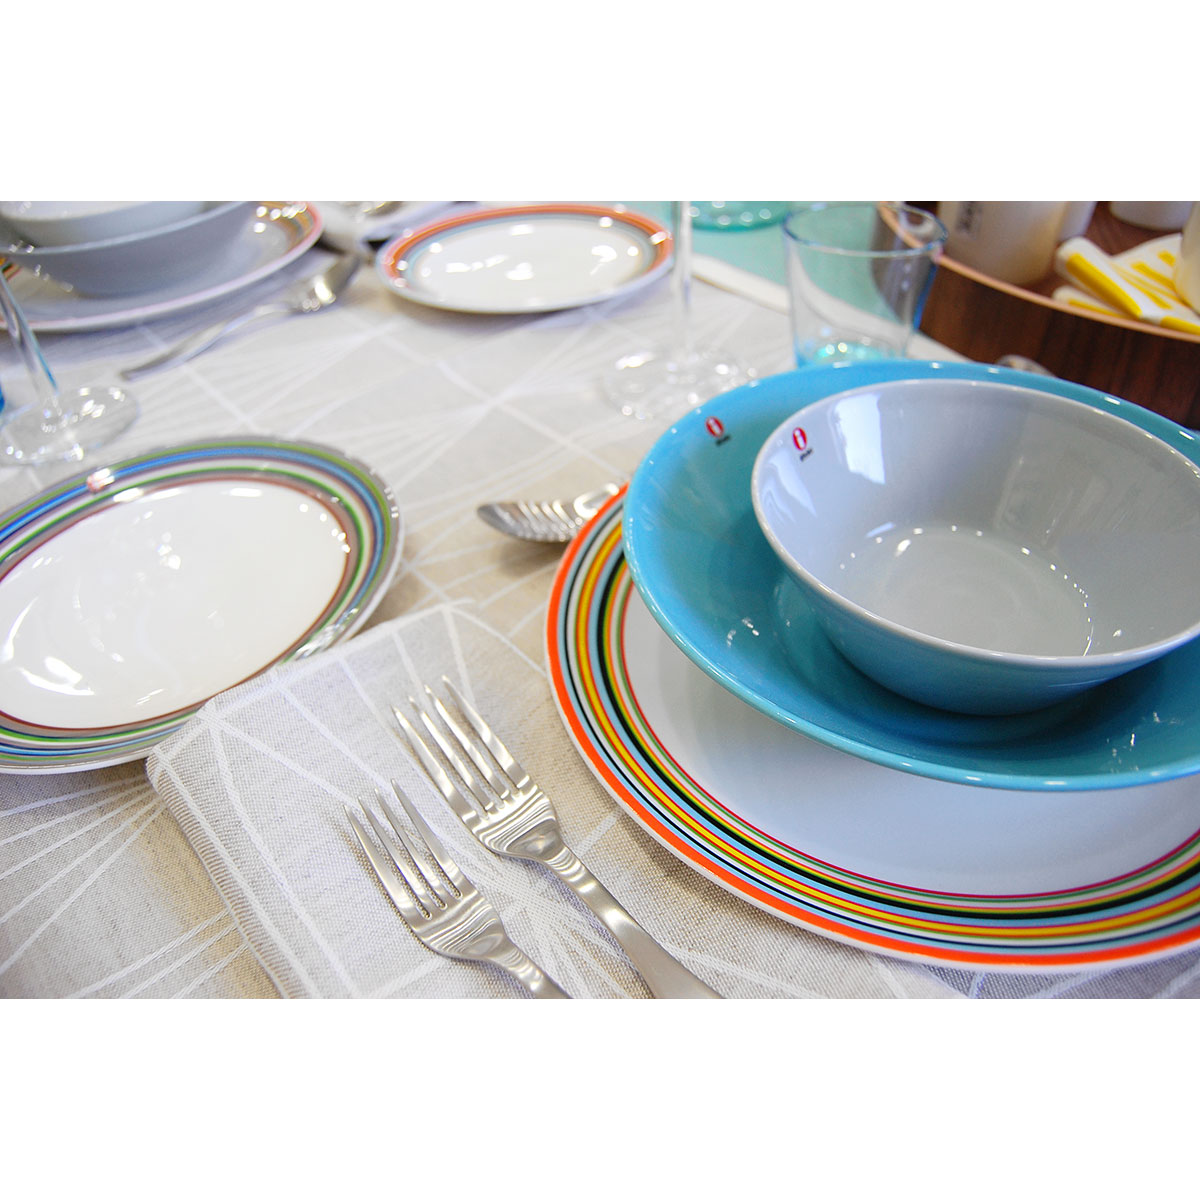 iittala teema turquoise pasta bowl iittala teema turquoise dinnerware. Black Bedroom Furniture Sets. Home Design Ideas